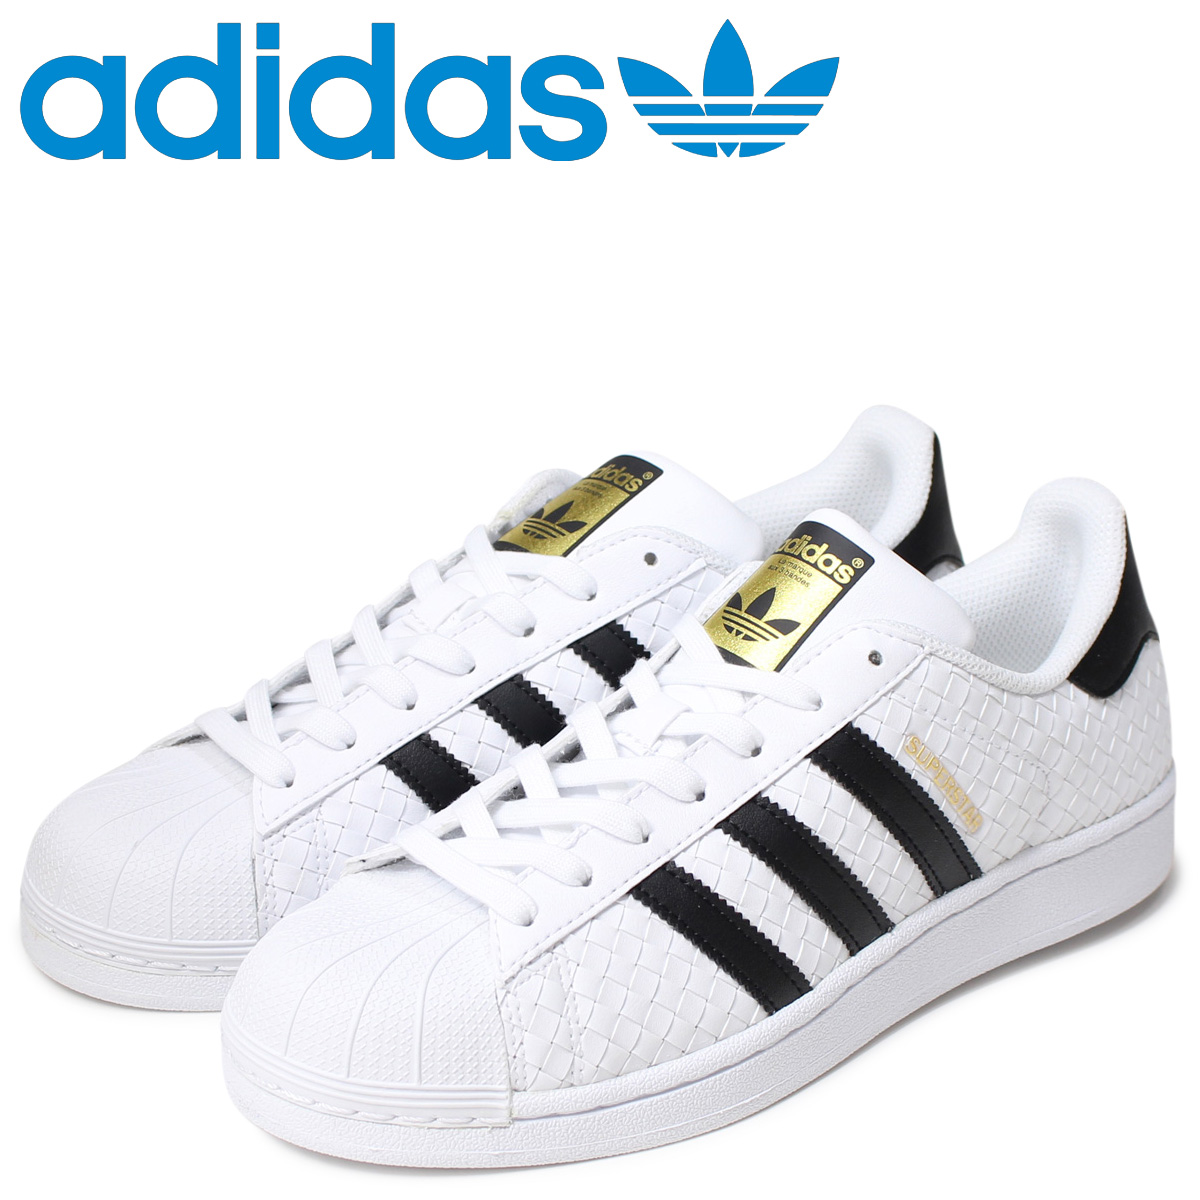 adidas superstars 22